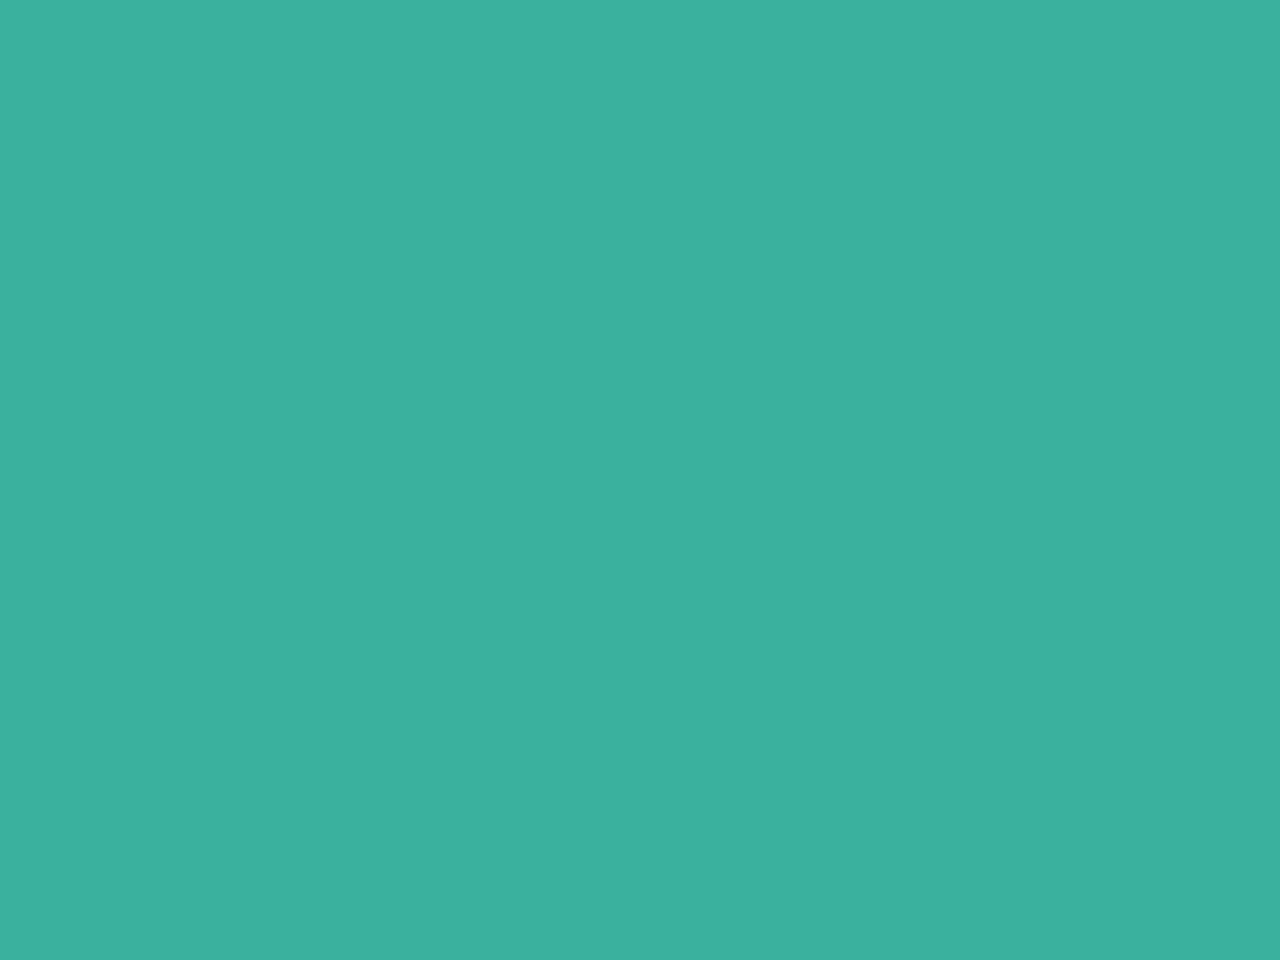 1280x960 Keppel Solid Color Background